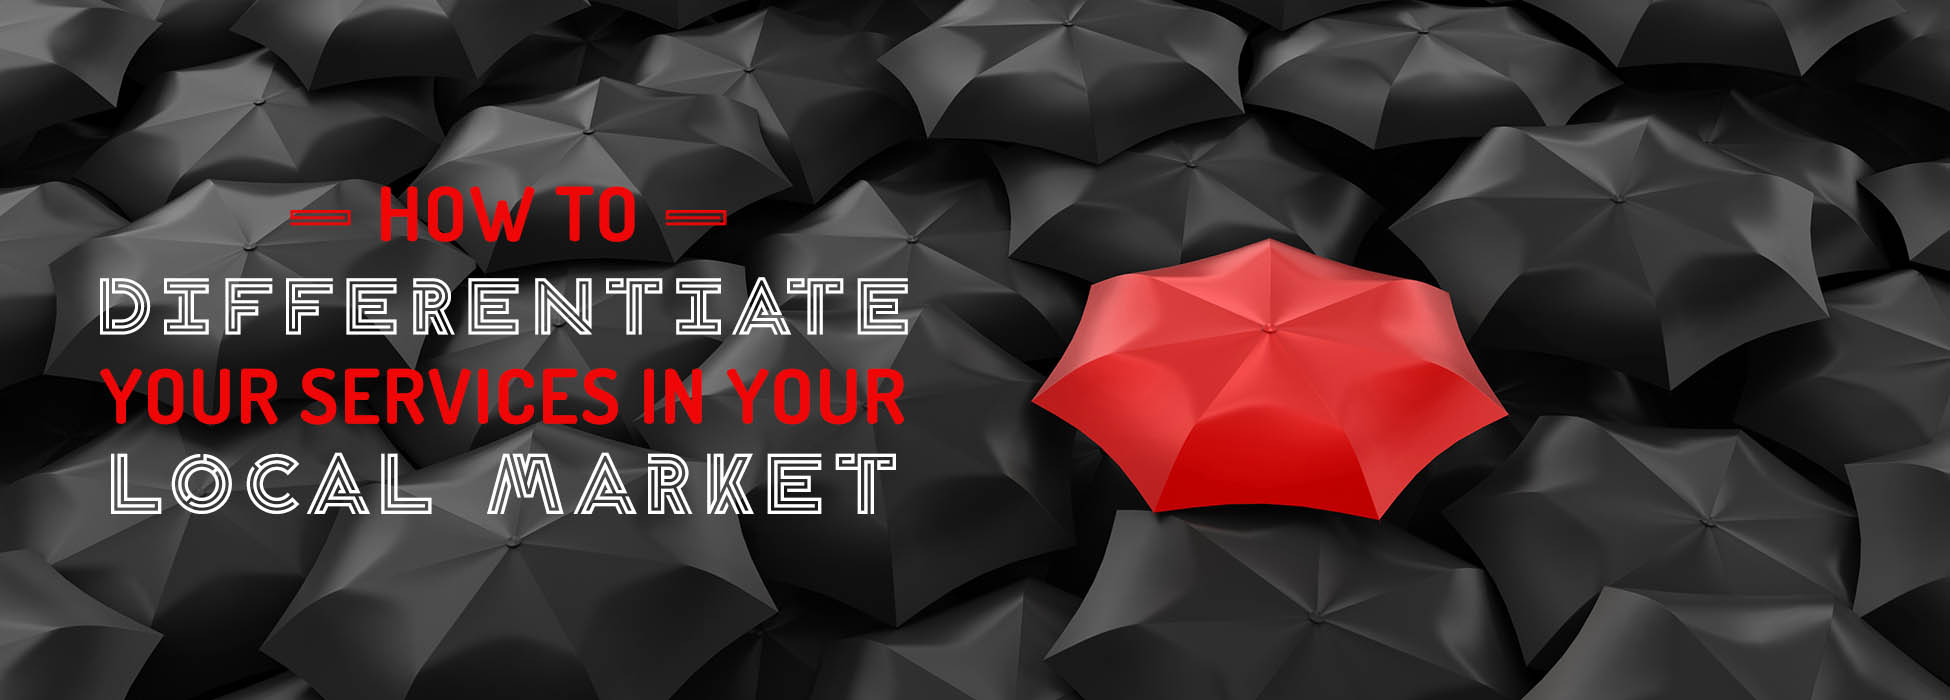 How to differentiate your services in your local market